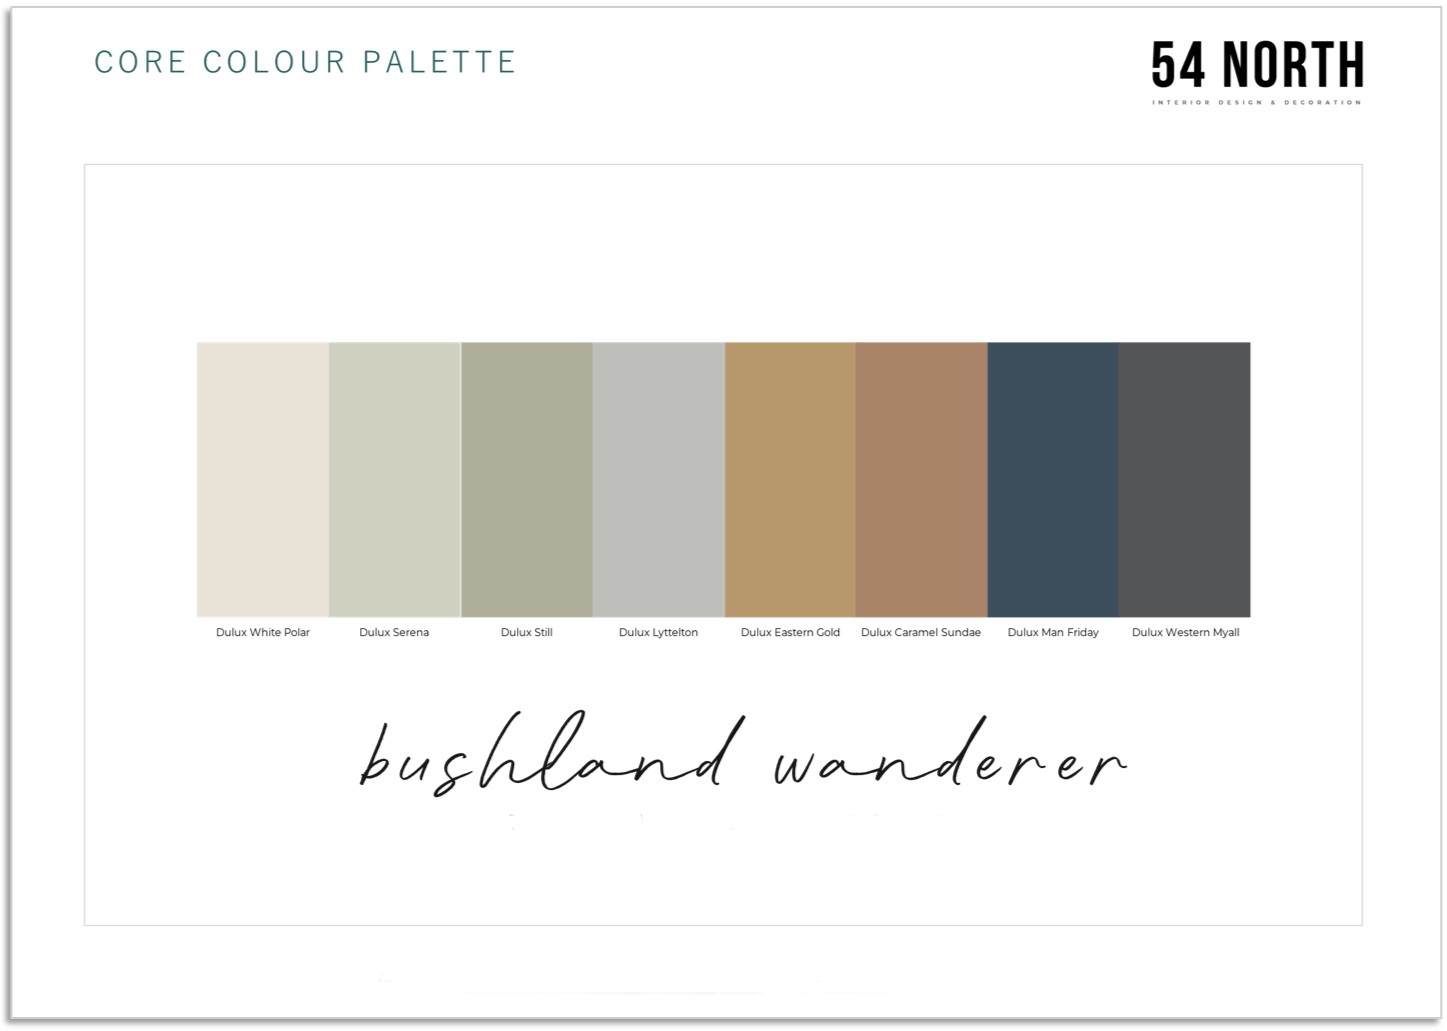 Colour Palette 10 copy (Edited).jpg